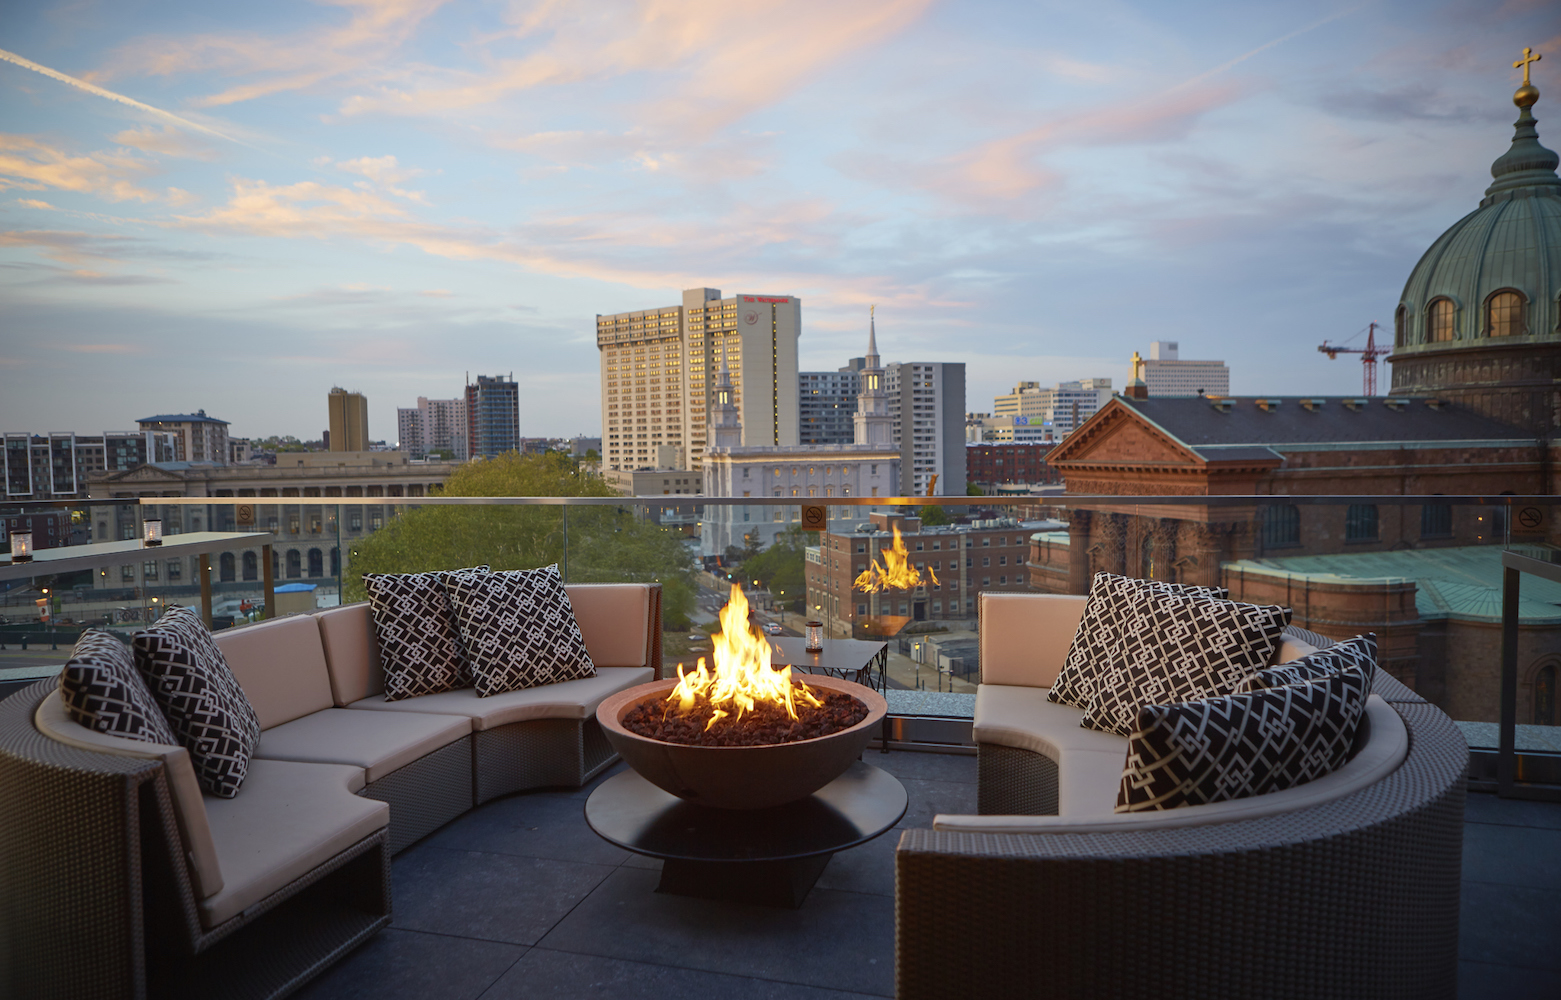 Image Courtesy of  Assembly Rooftop